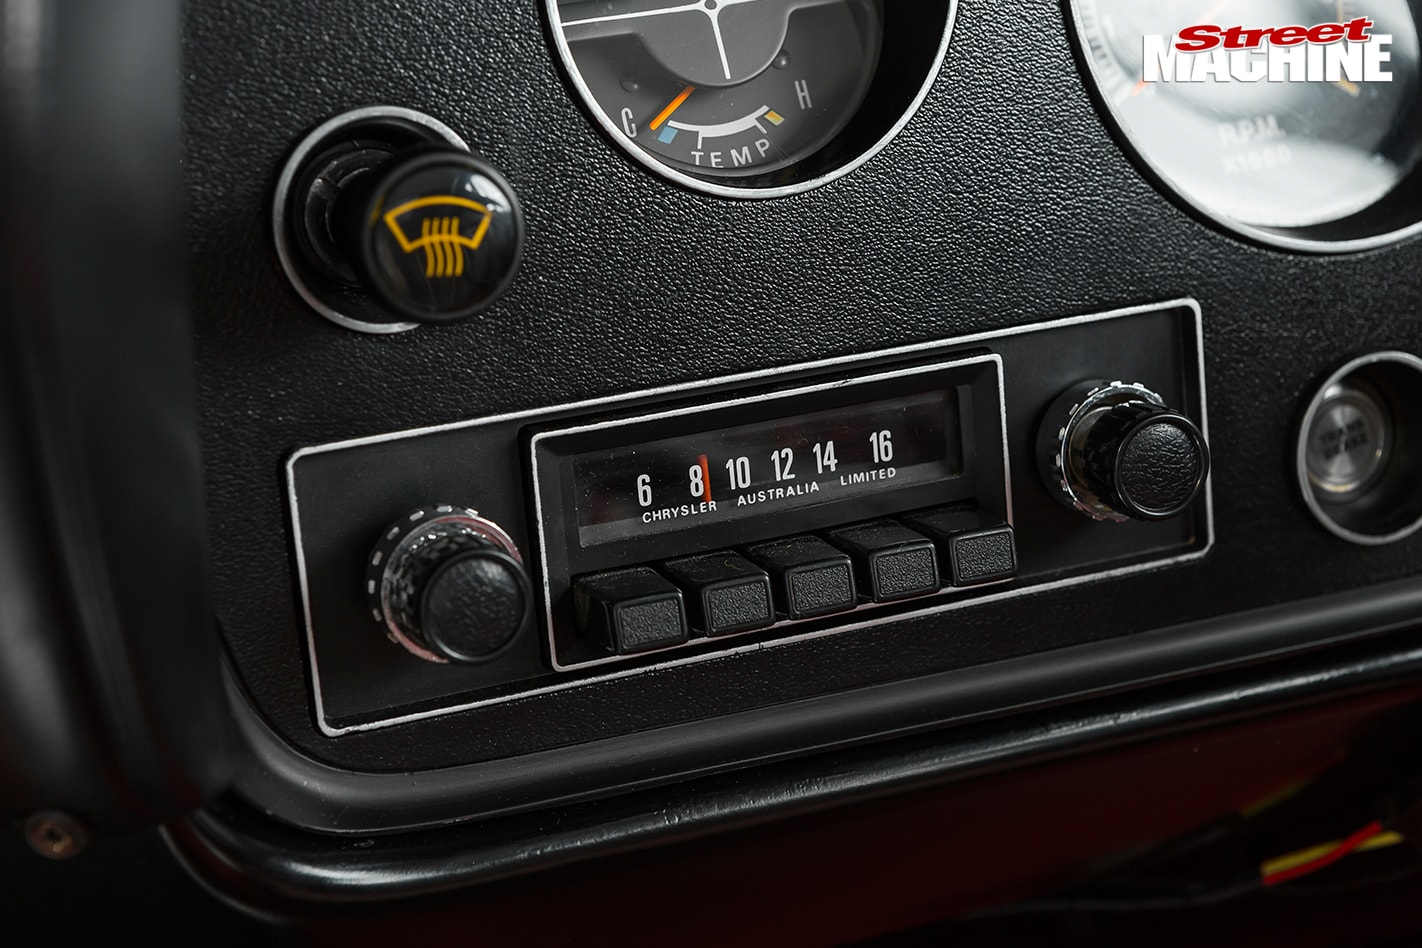 Chrysler -cl -charger -radio